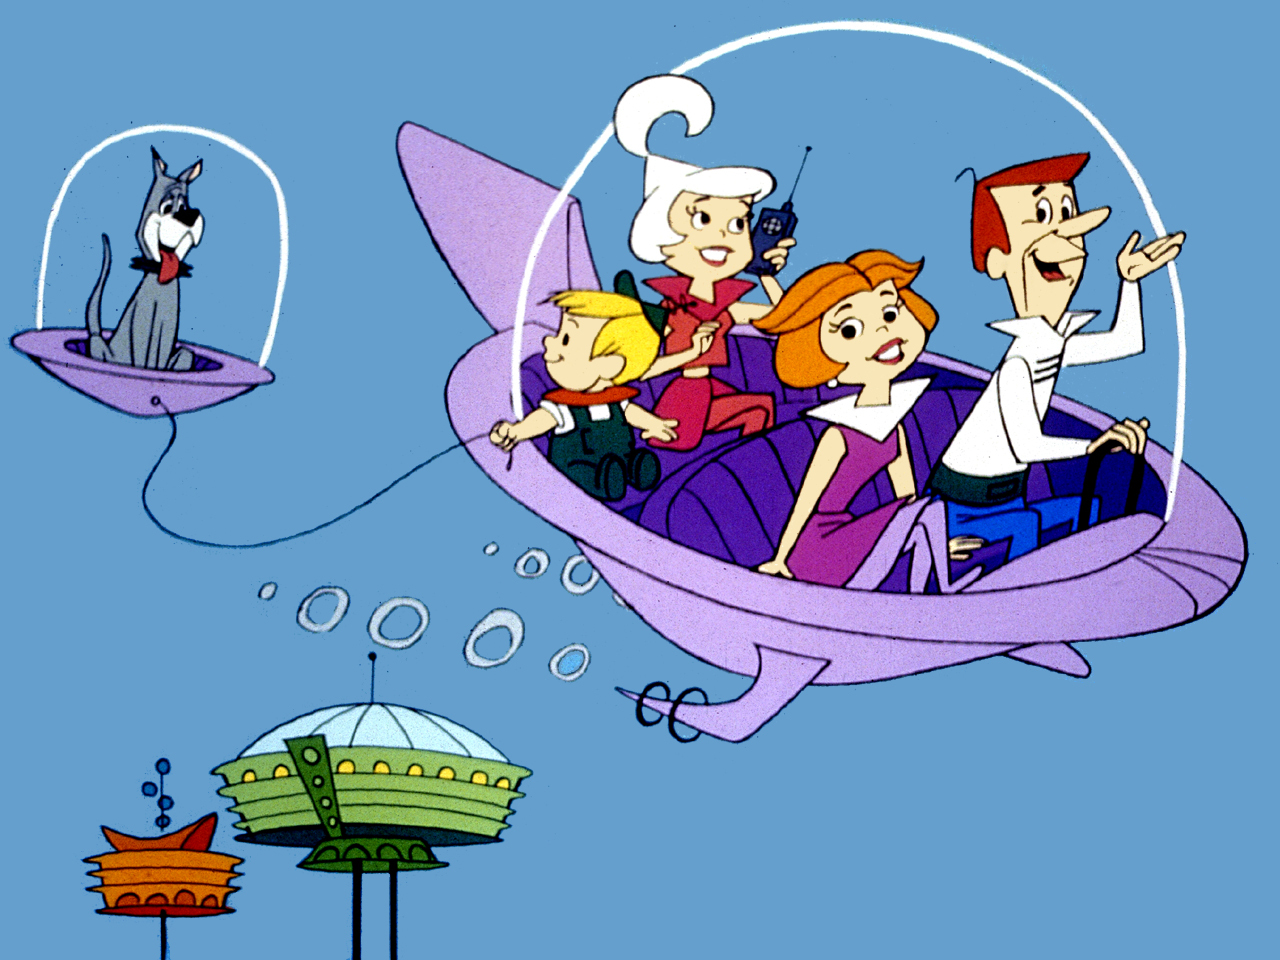 Movie the jetsons. Moving forward at warner